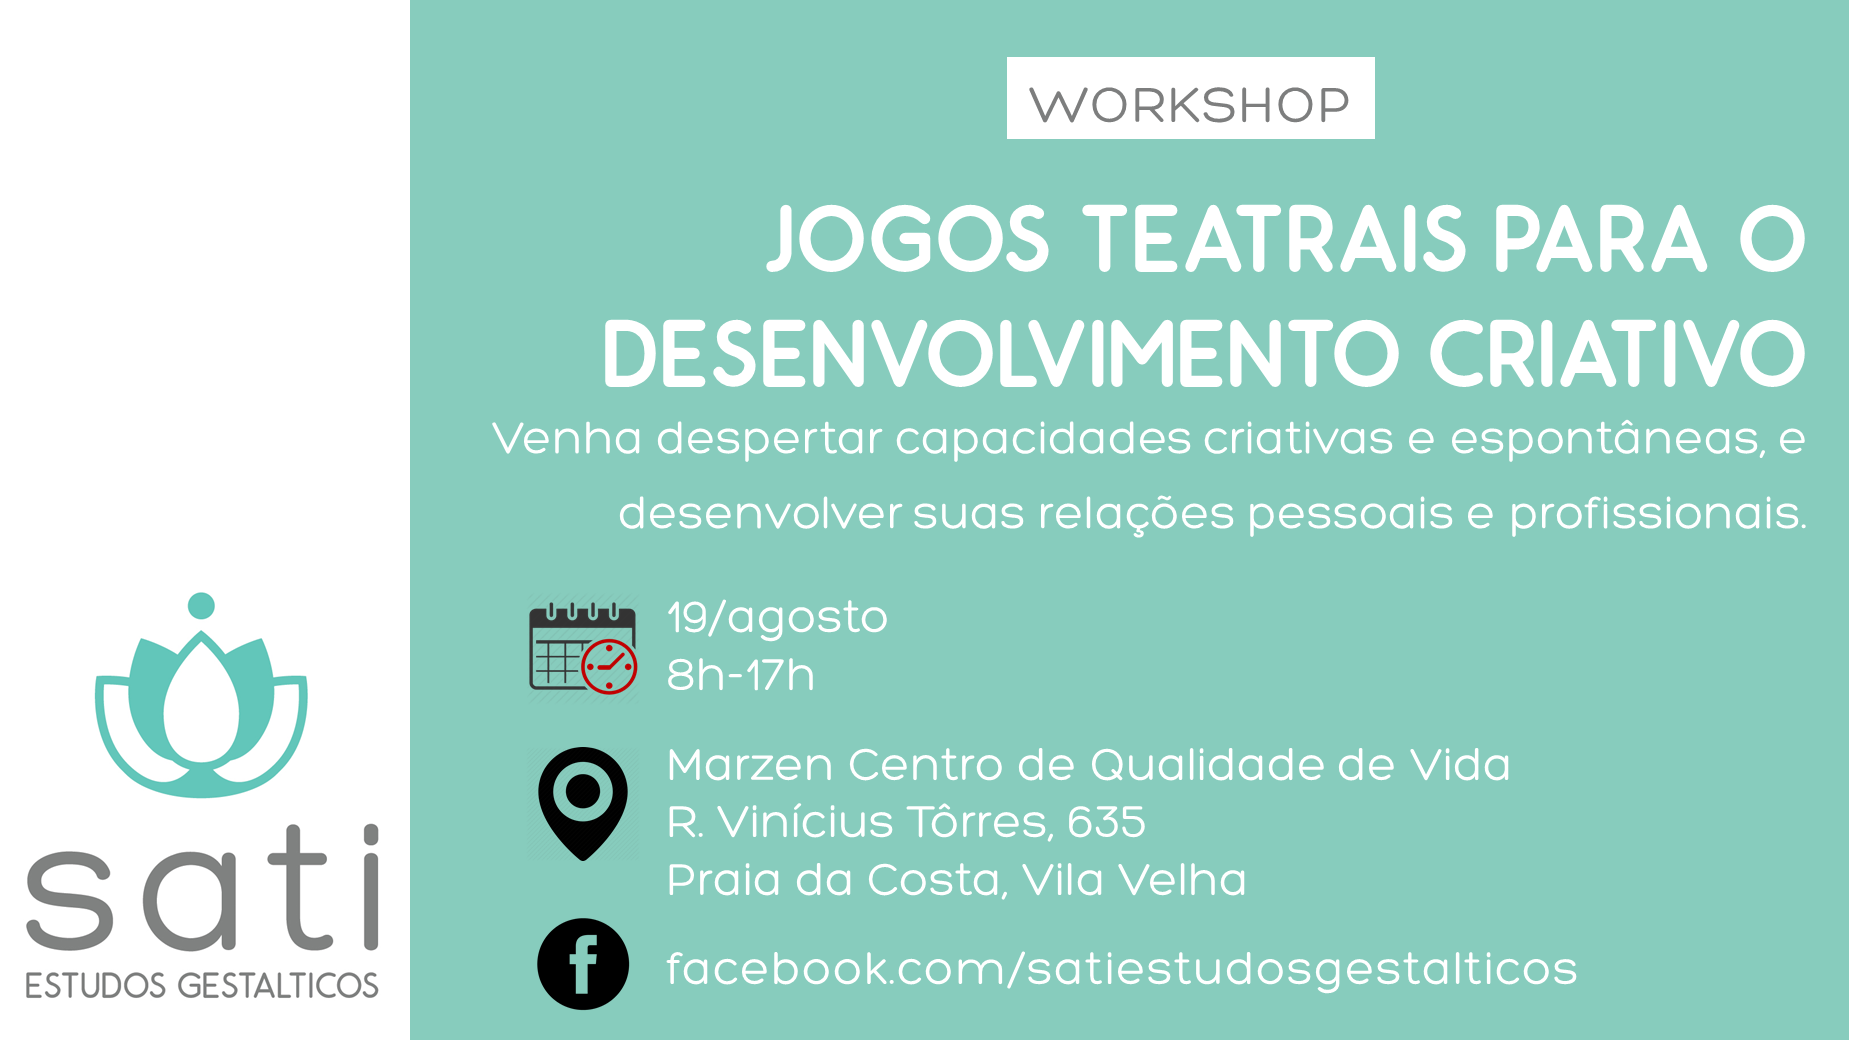 WORKSHOP JEAN _ arte para FB 2.4 EVENTO 16-9